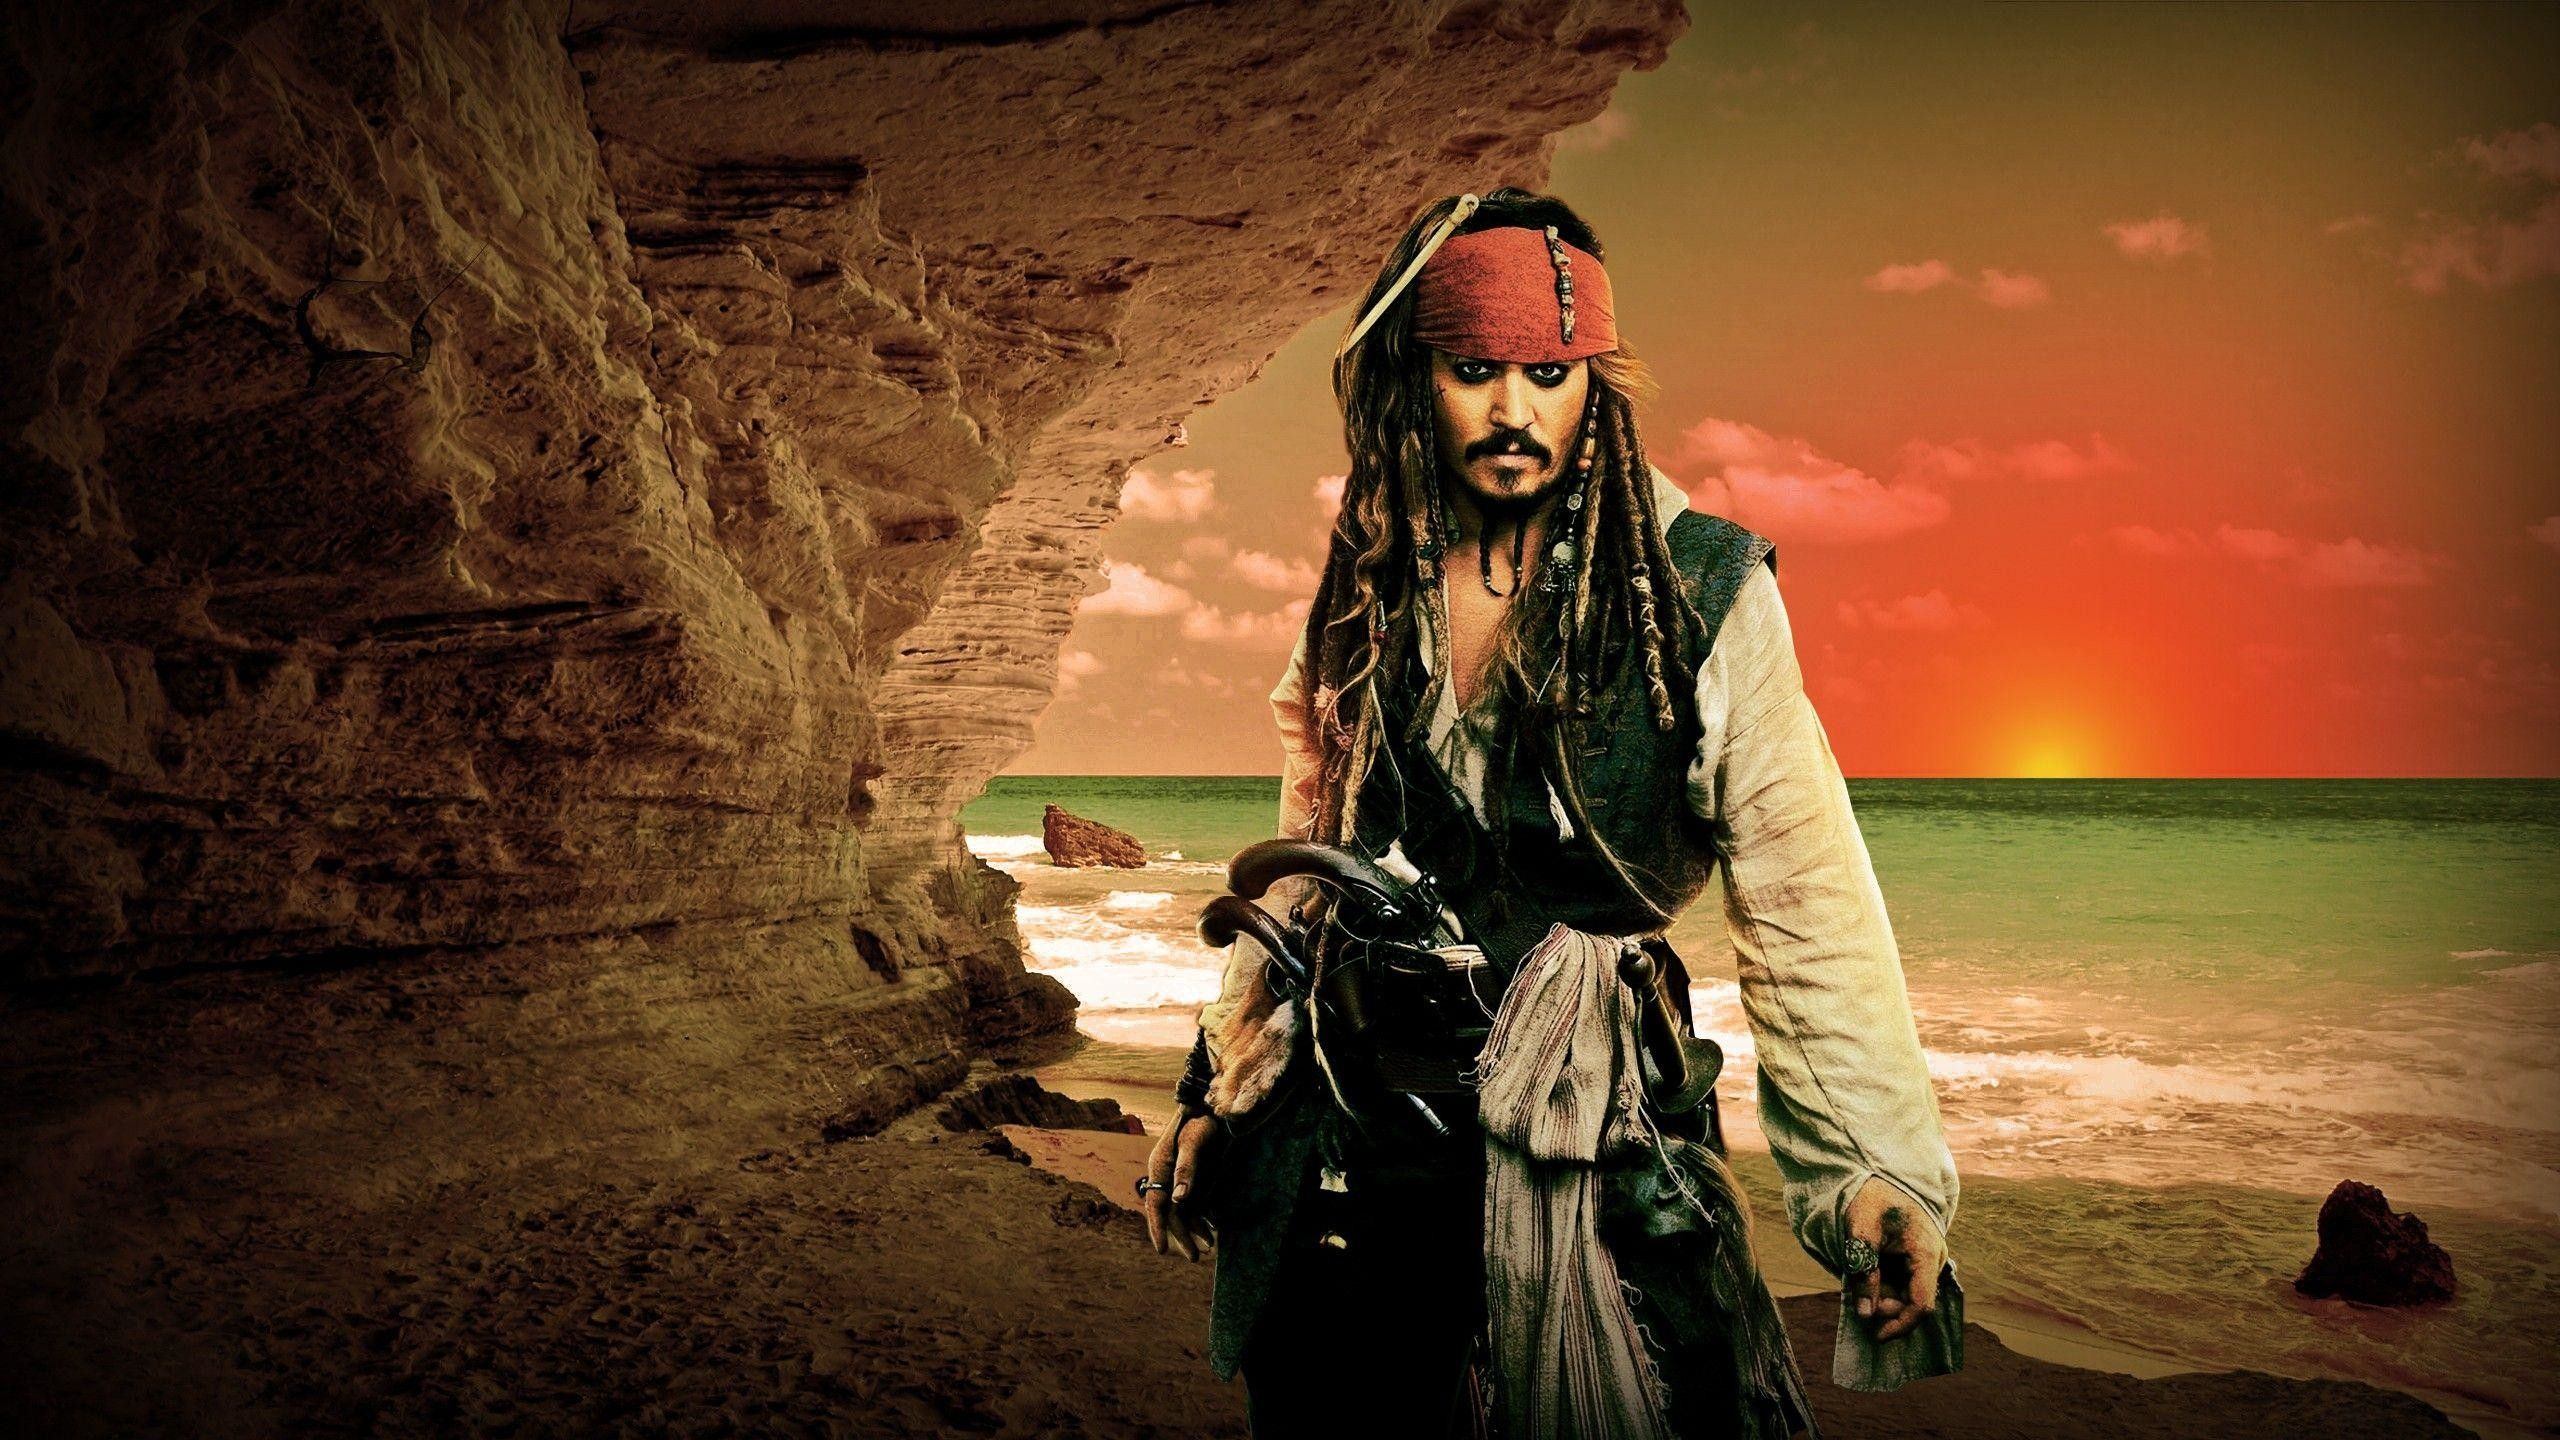 270 Johnny Depp Hd Wallpapers Backgrounds Wallpaper Abyss 2560x1440 Jack Sparrow Wallpaper Pirates Of The Caribbean Jack Sparrow